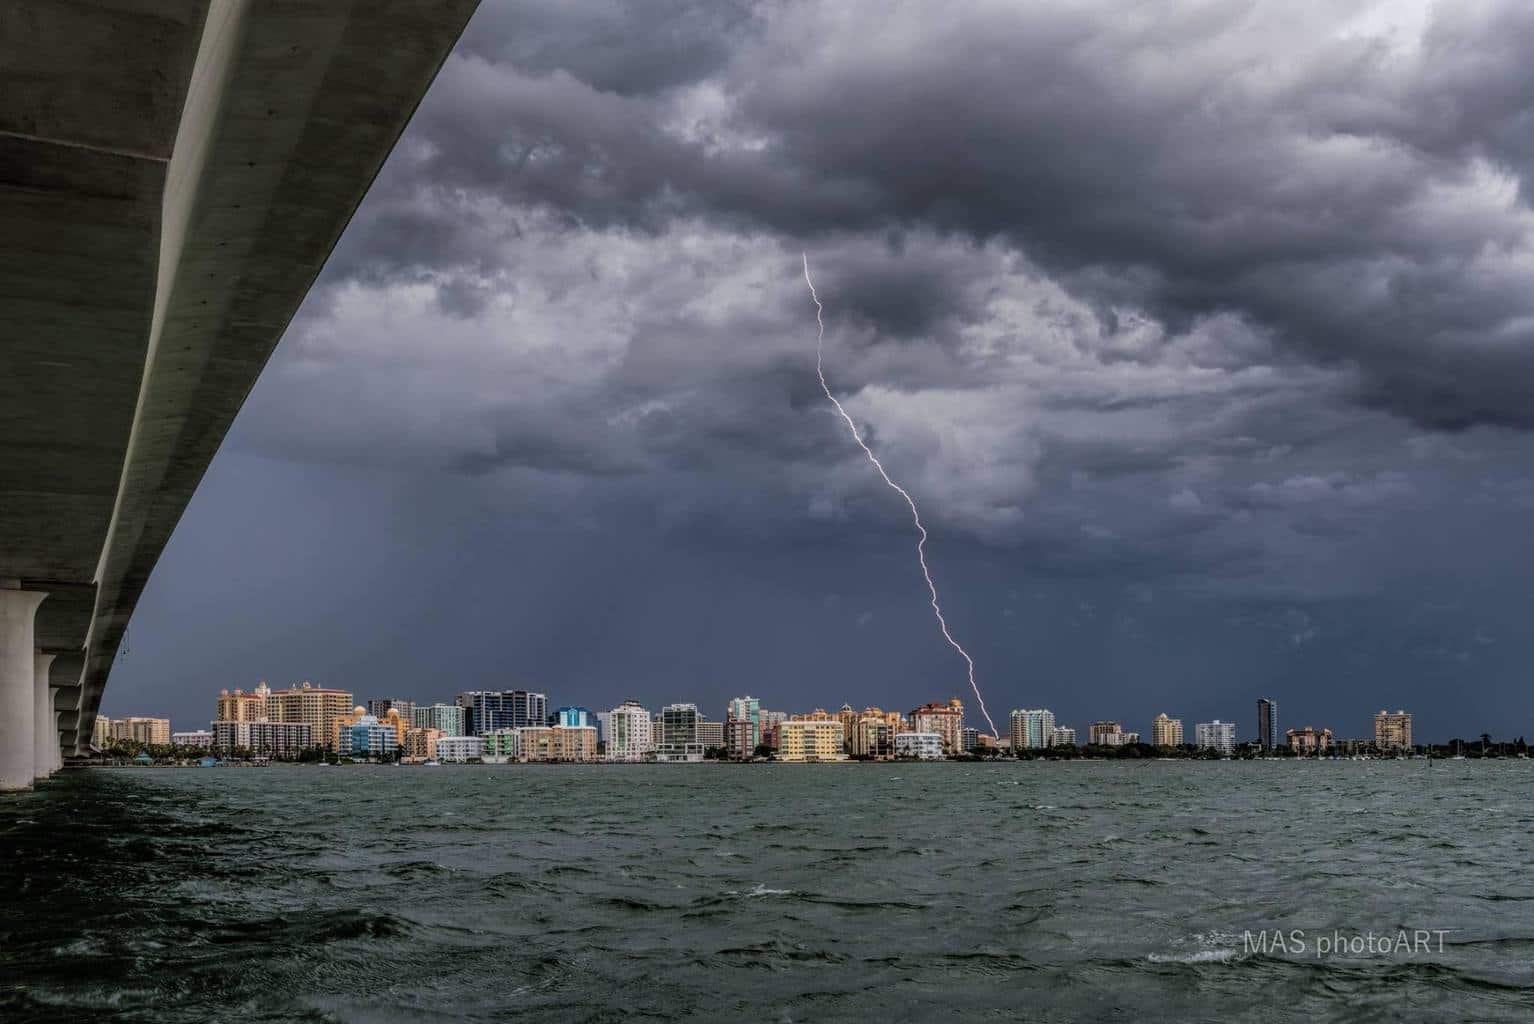 Lightning in sarasota. Finally. But alas it was in the daytime.